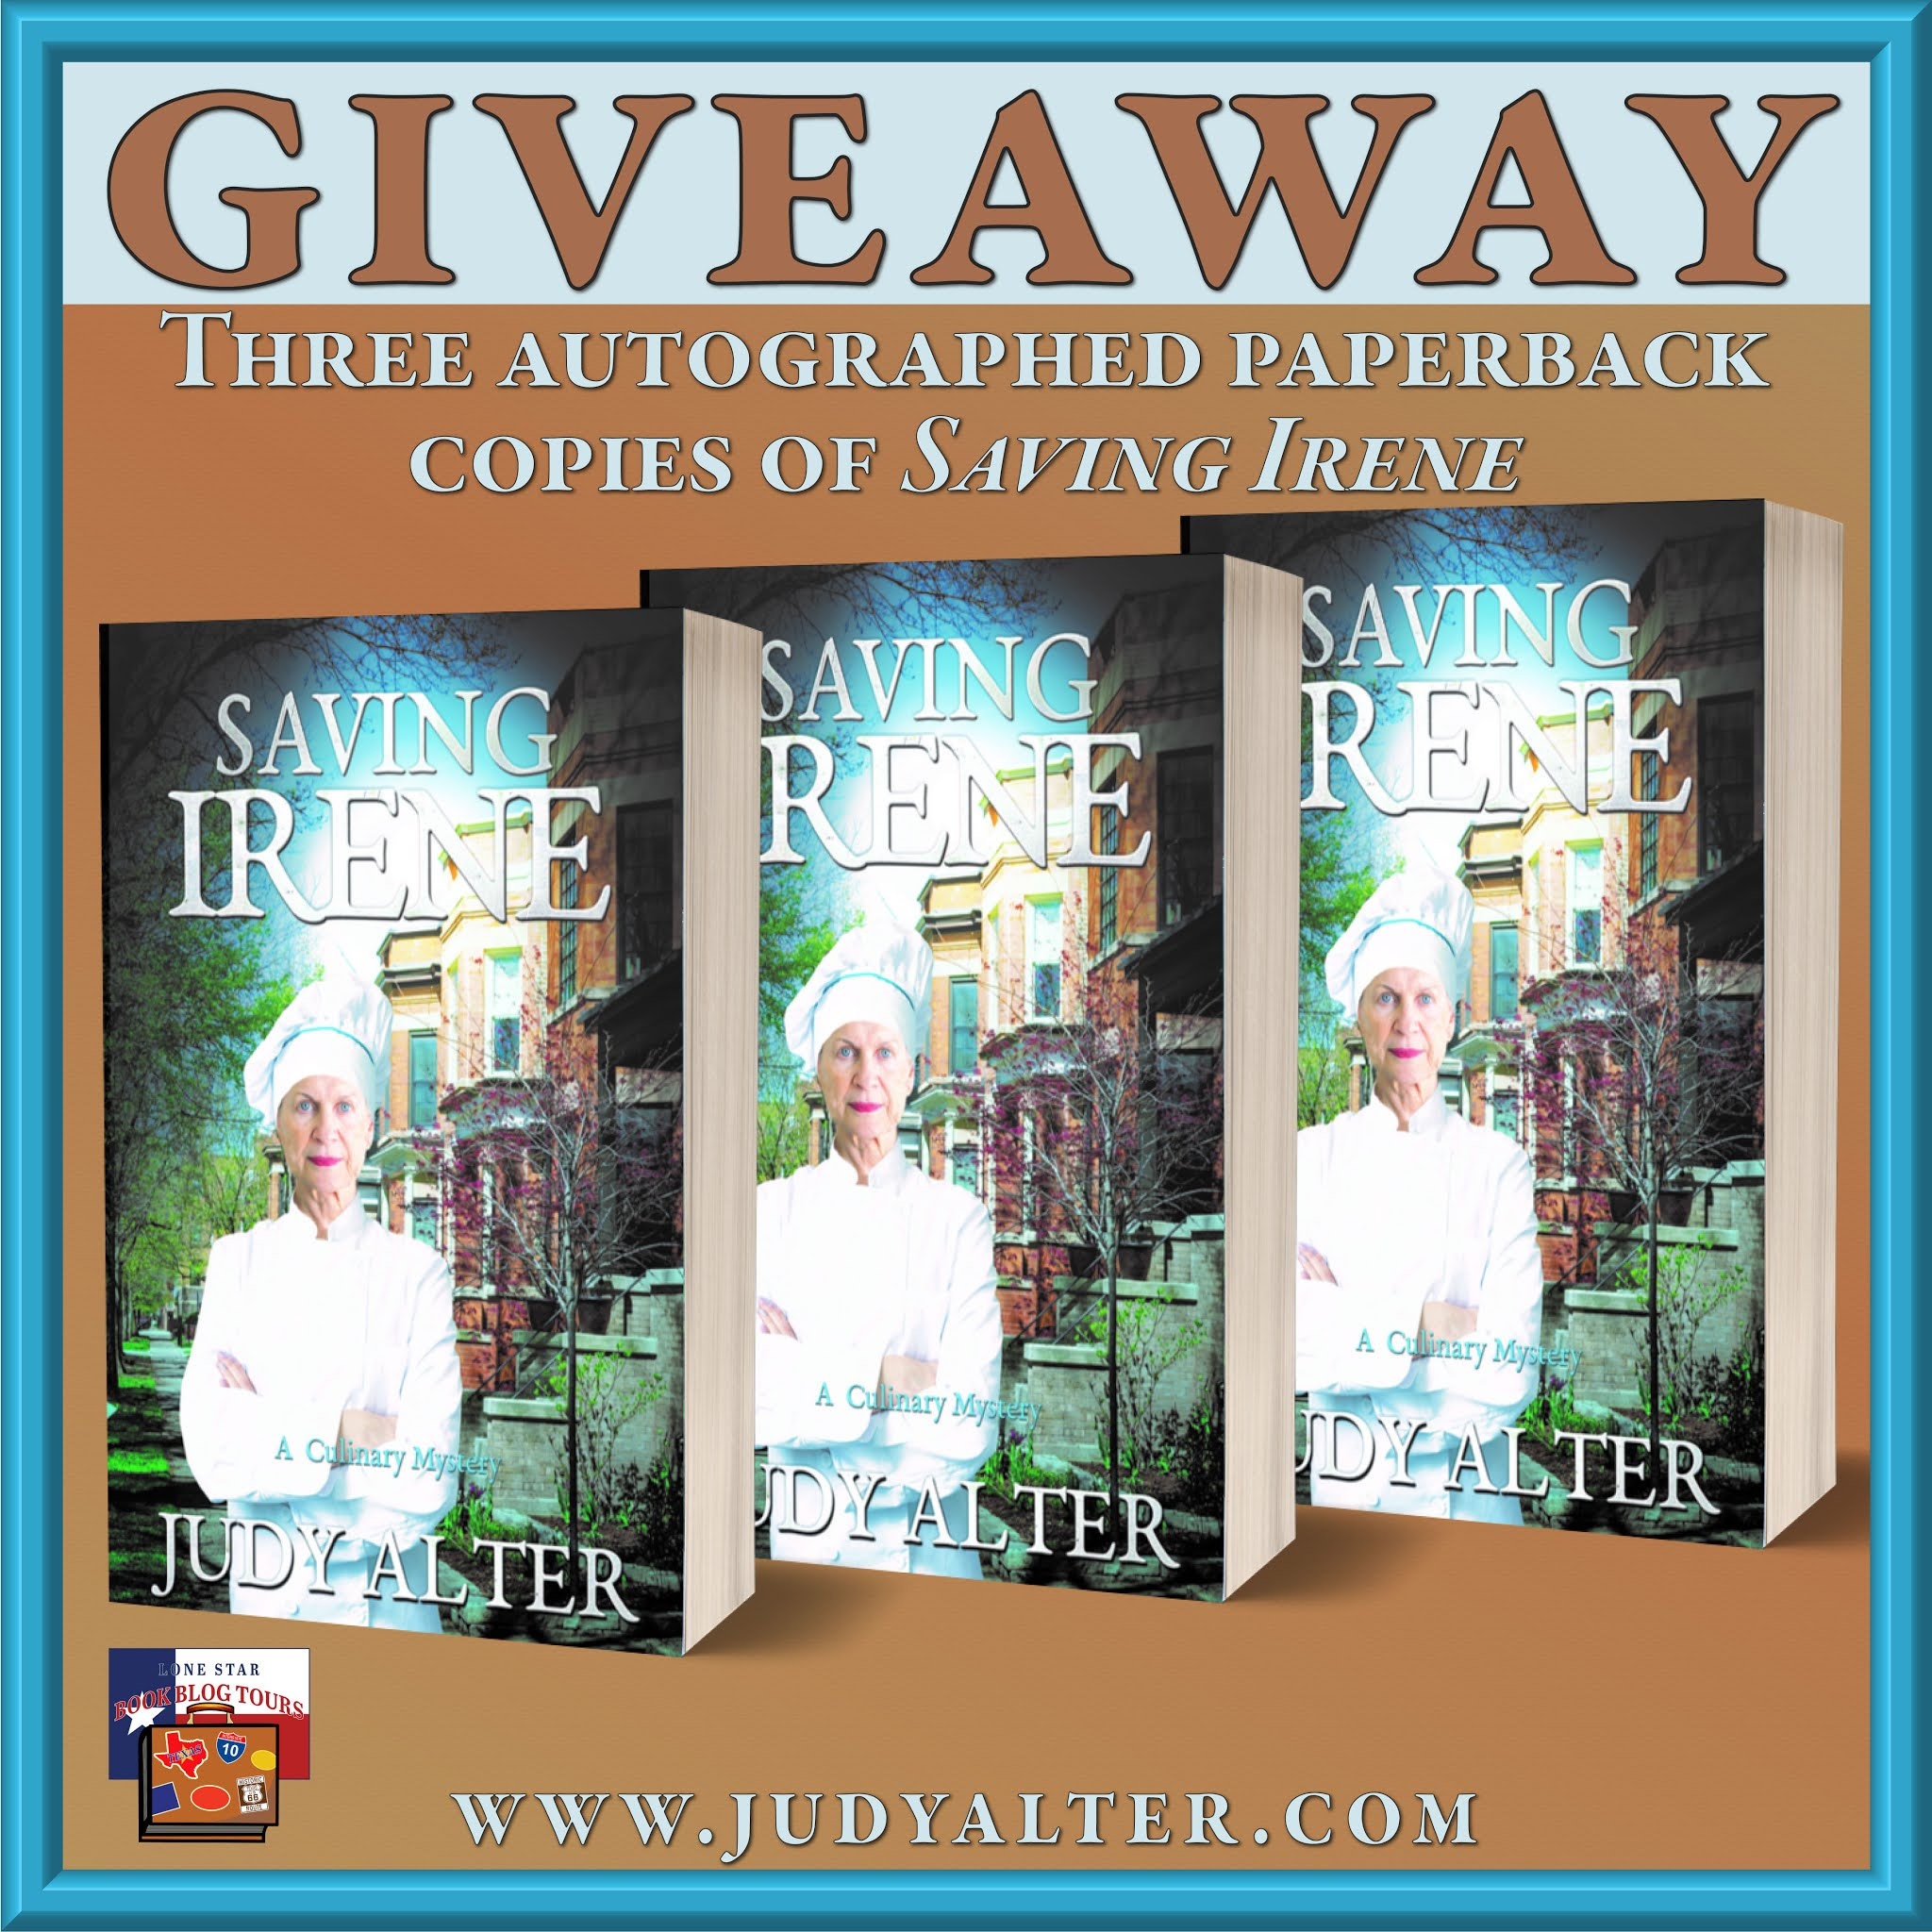 Saving Irene blitz giveaway graphic. Prizes to be awarded precede this image in the post text.